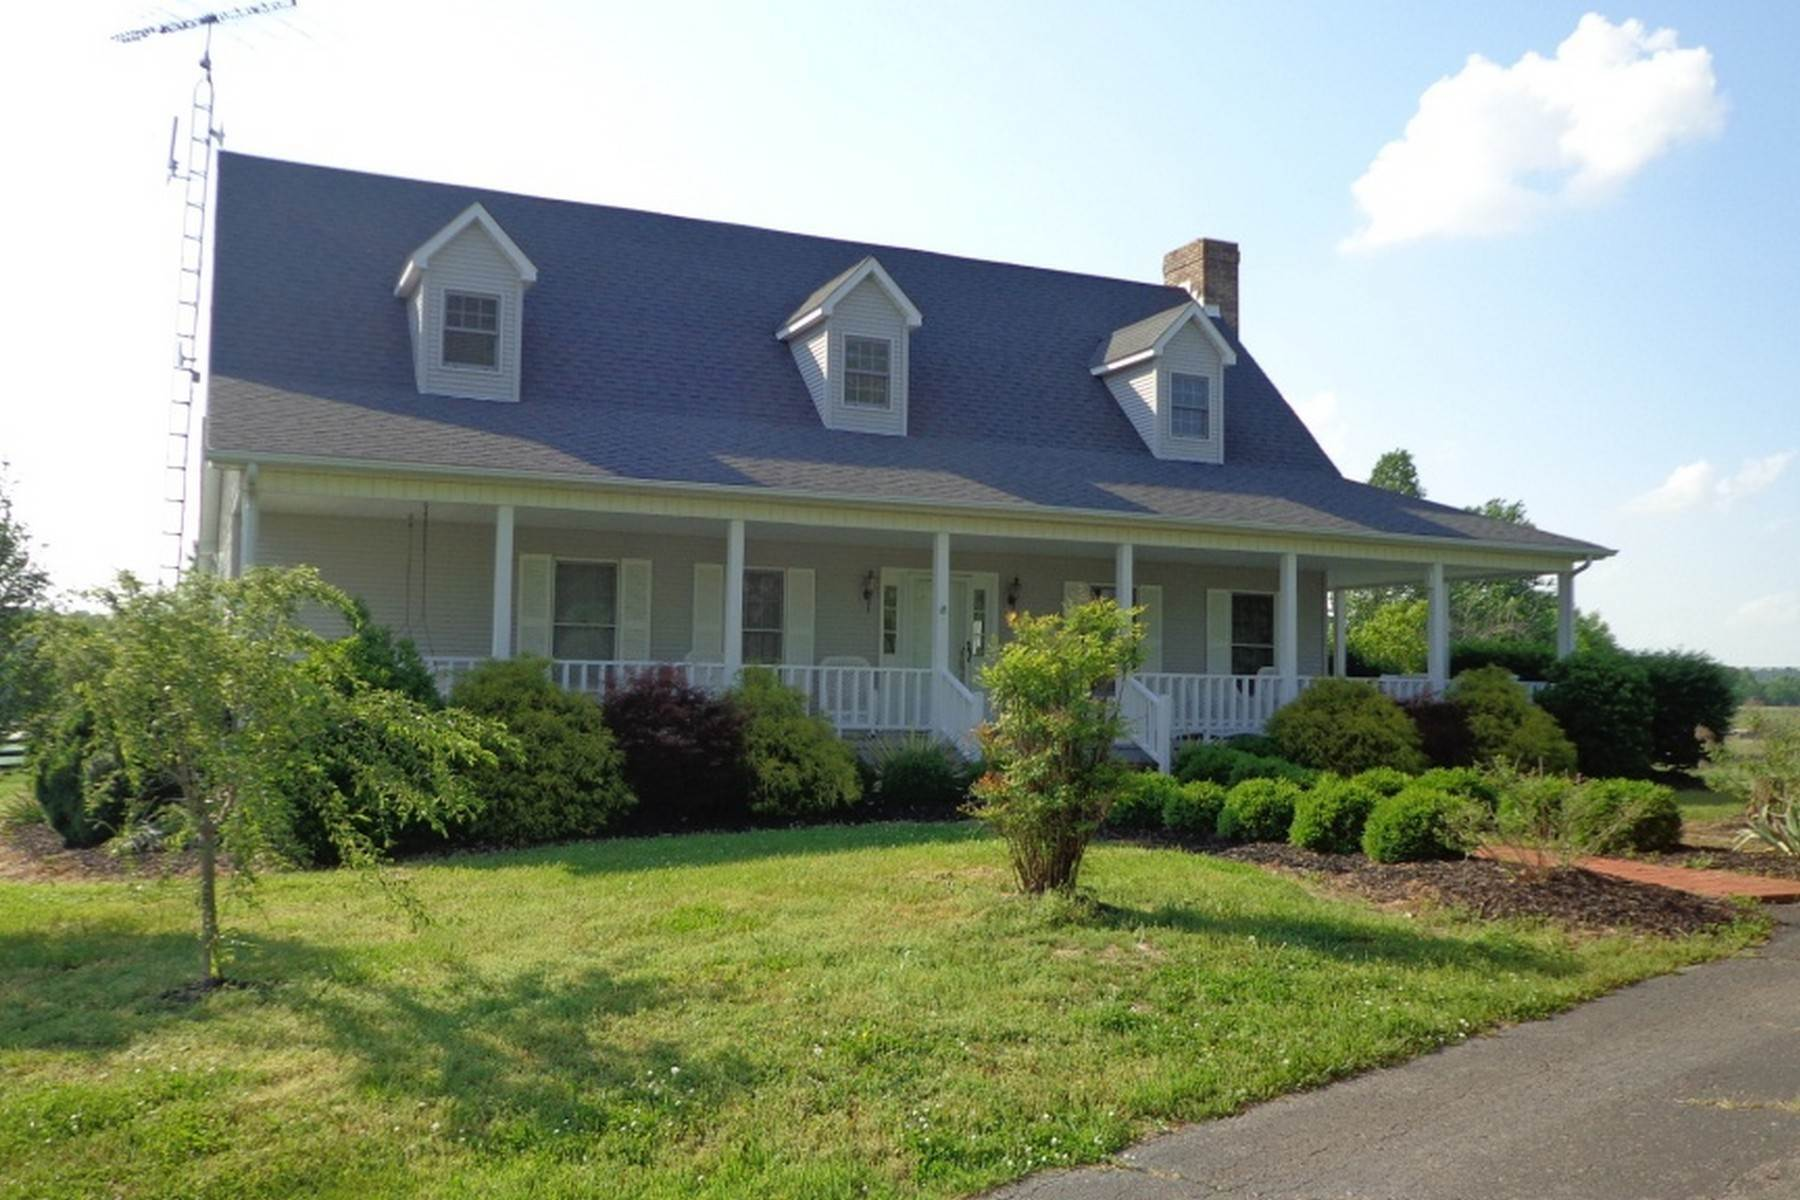 2. Farm and Ranch Properties for Sale at 4770 Grooms Lane Princeton, Kentucky 42445 United States